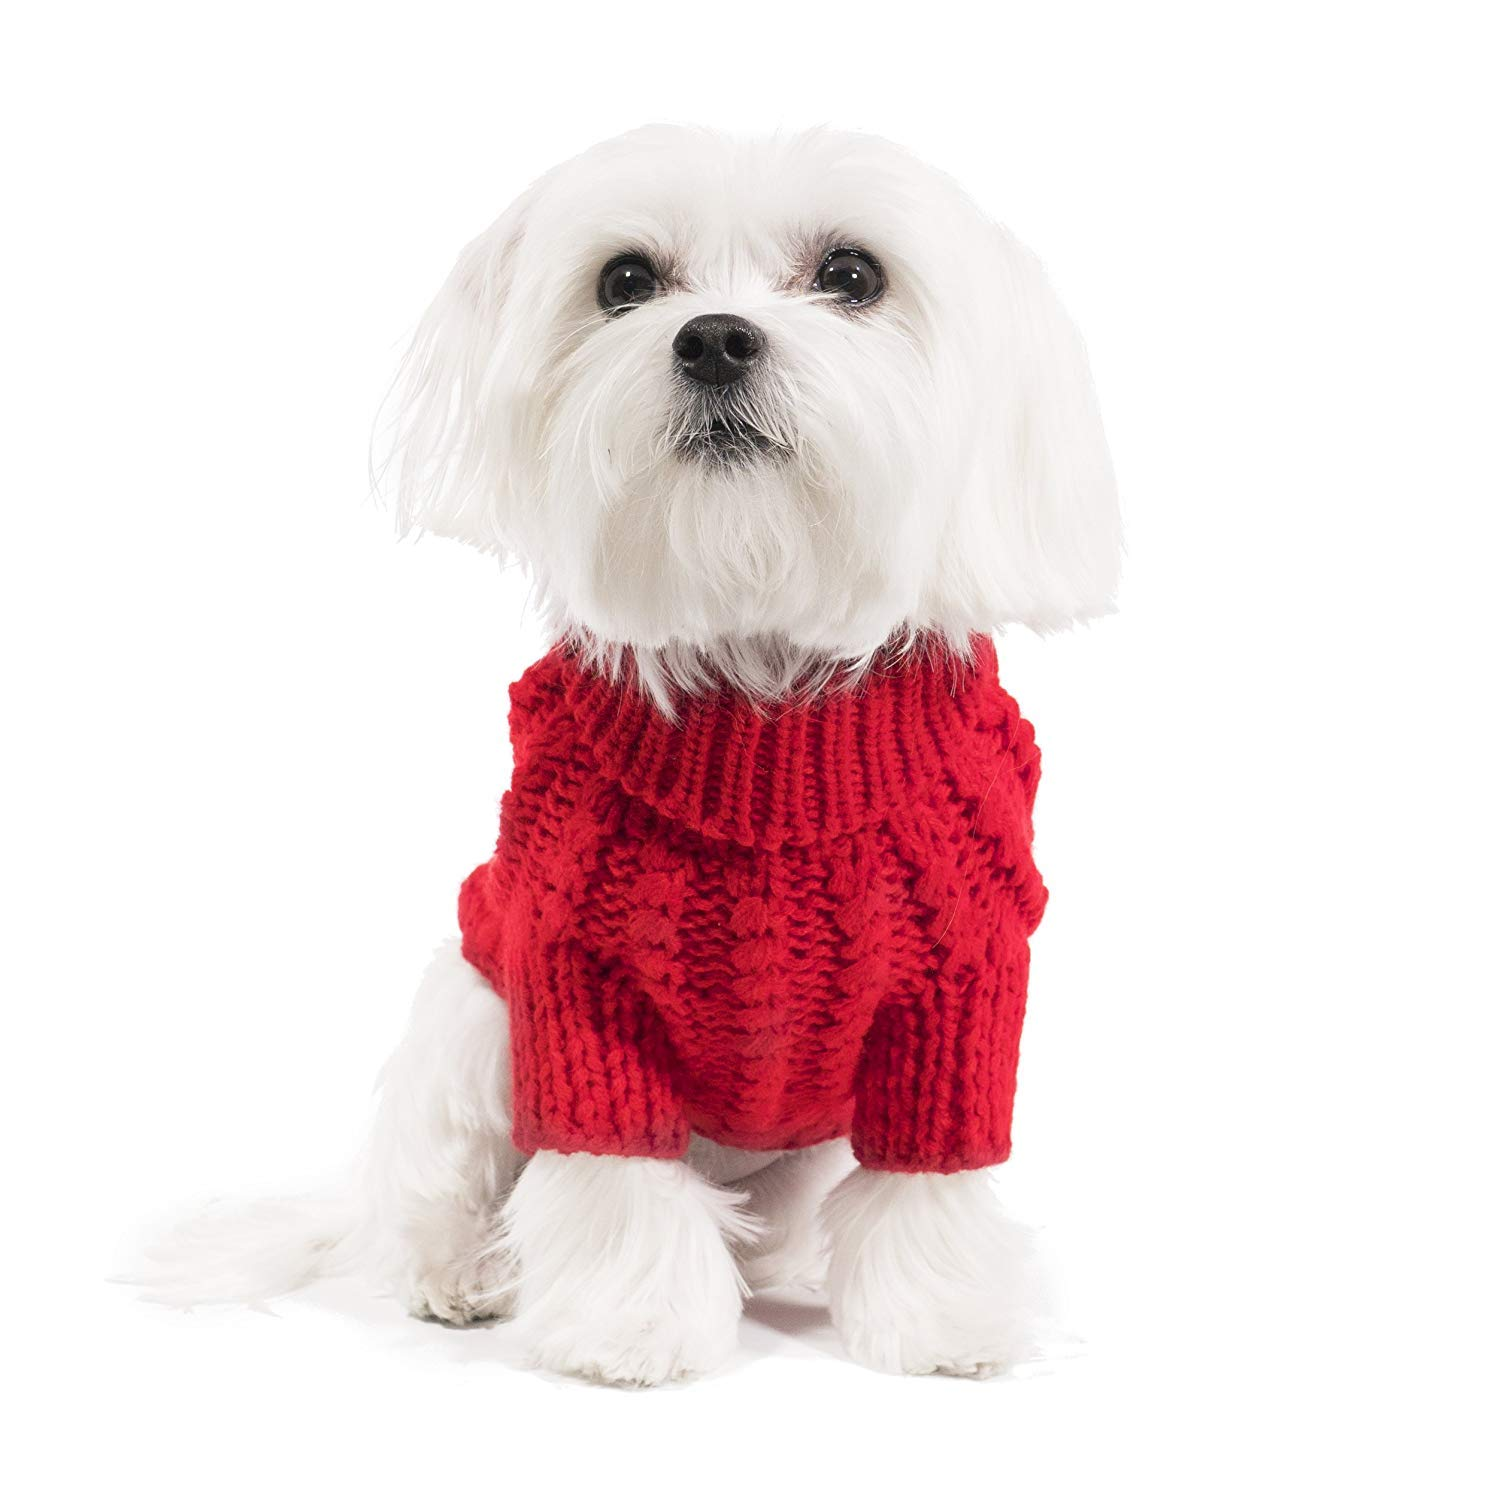 Le Petit Chien Handmade Knitwear Soft Sweater for Small Dogs or Puppies (Small, Red)